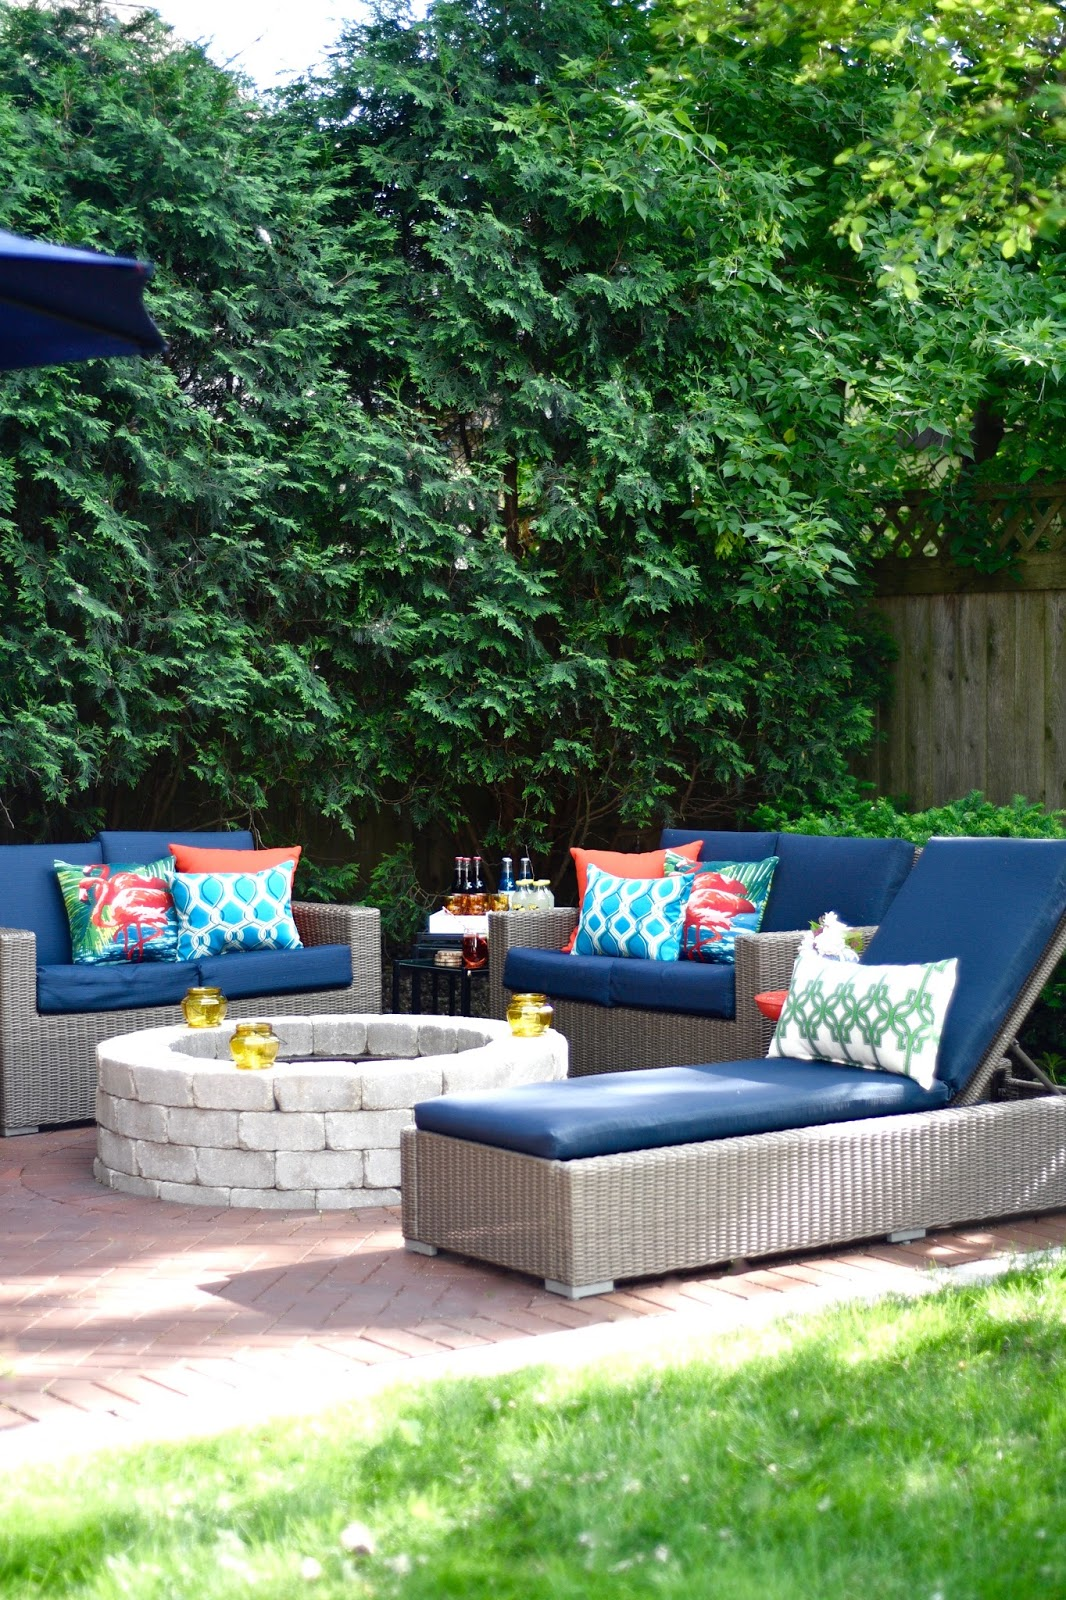 Memorial Weekend Sale On Outdoor Furniture Home With Keki - Backyard furniture sale